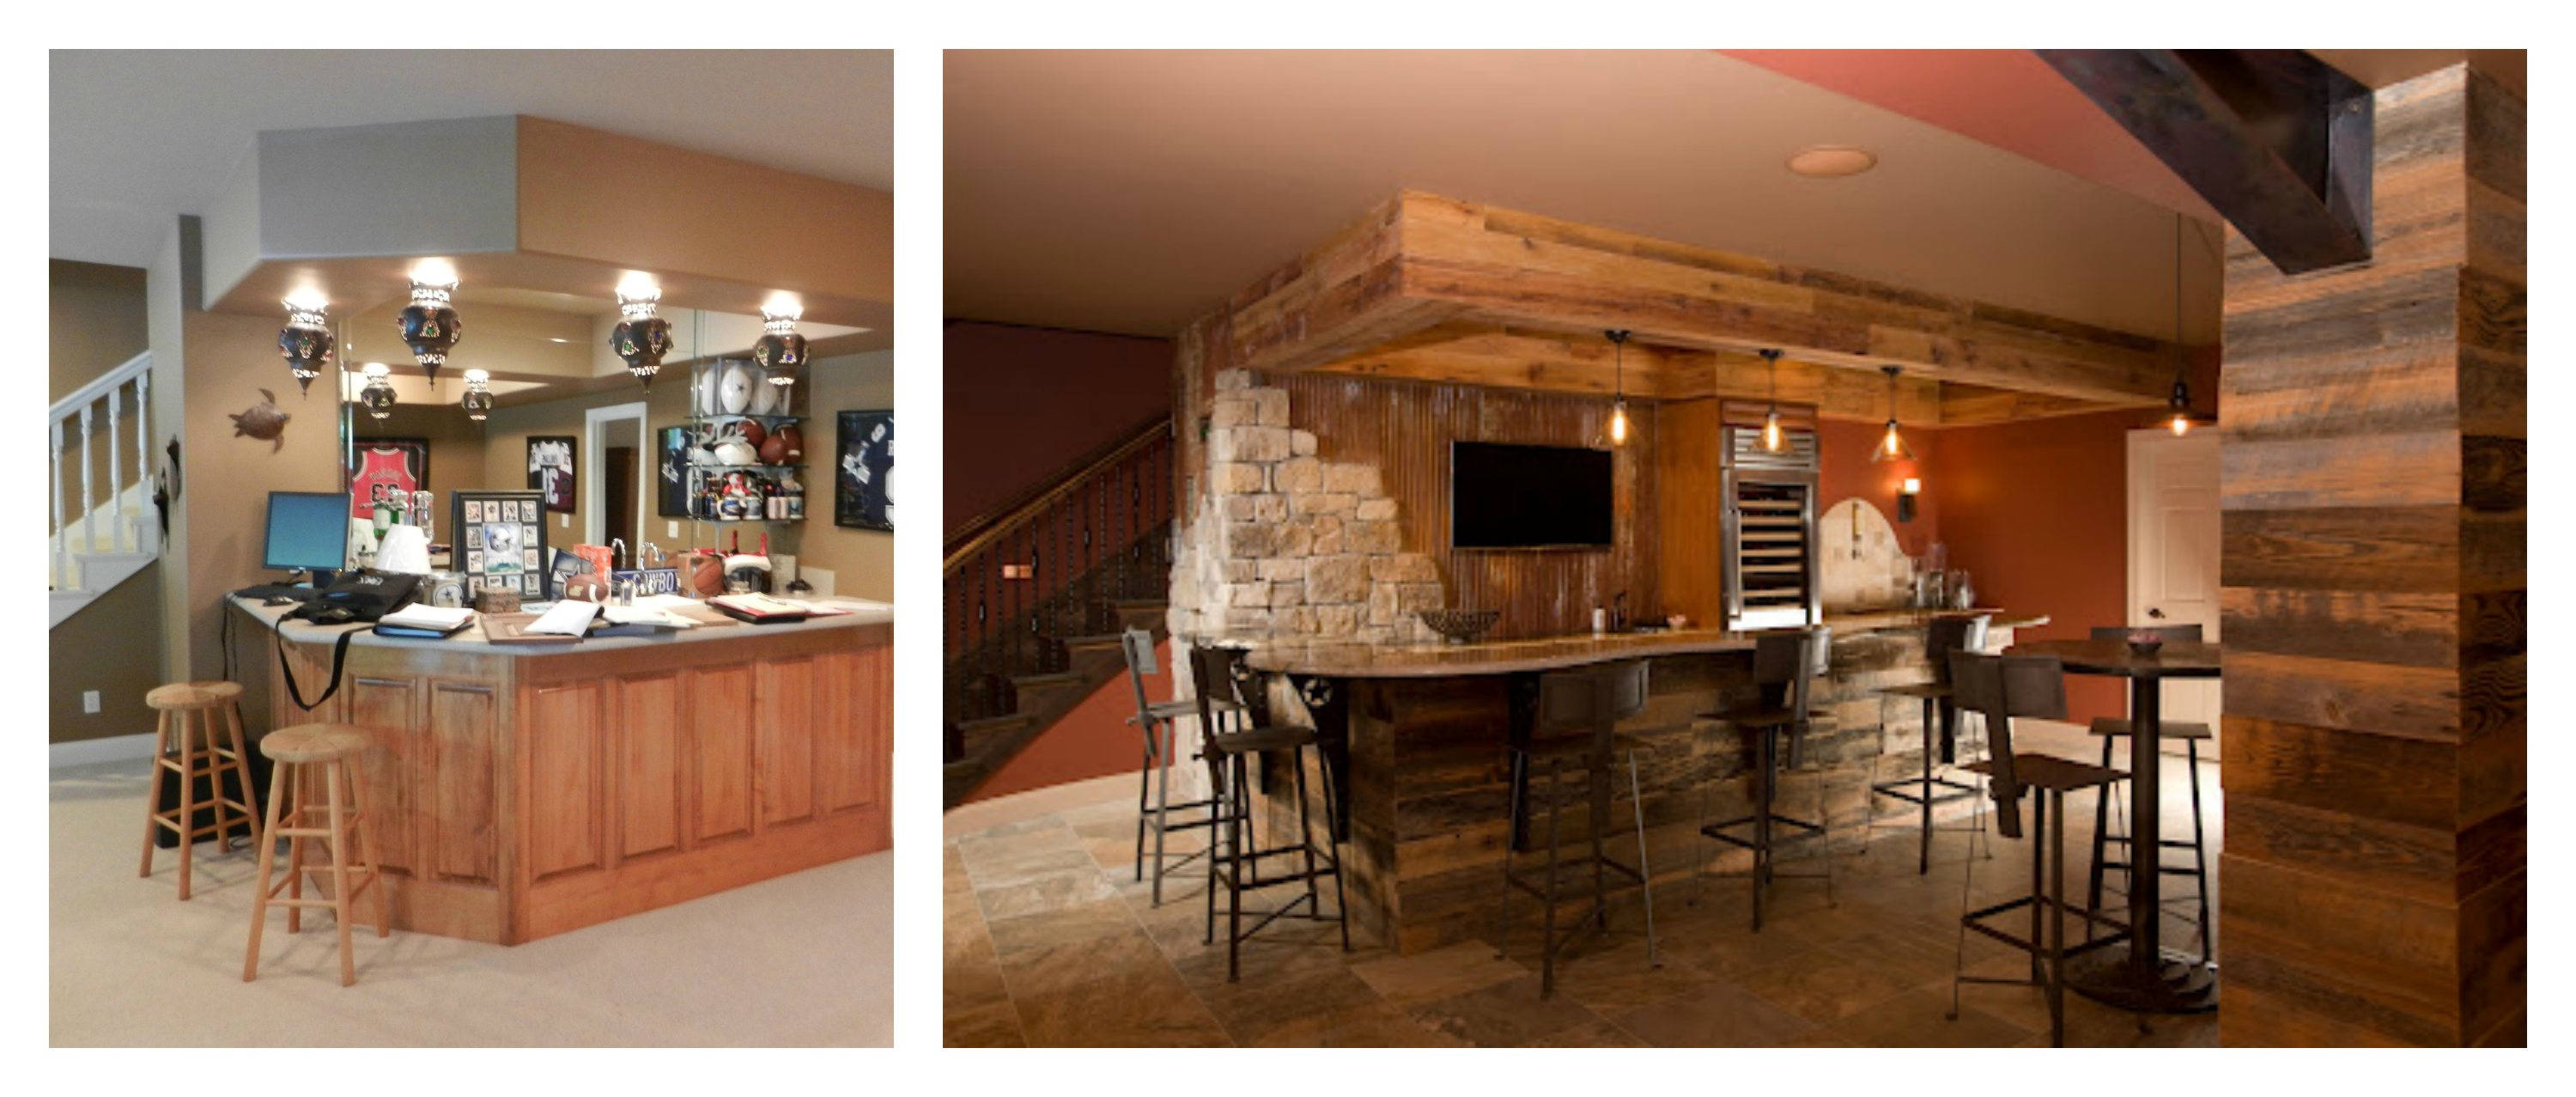 Basement Remodeling Ideas Before And After basement remodeling… | dreammaker bath & kitchen - springfield il